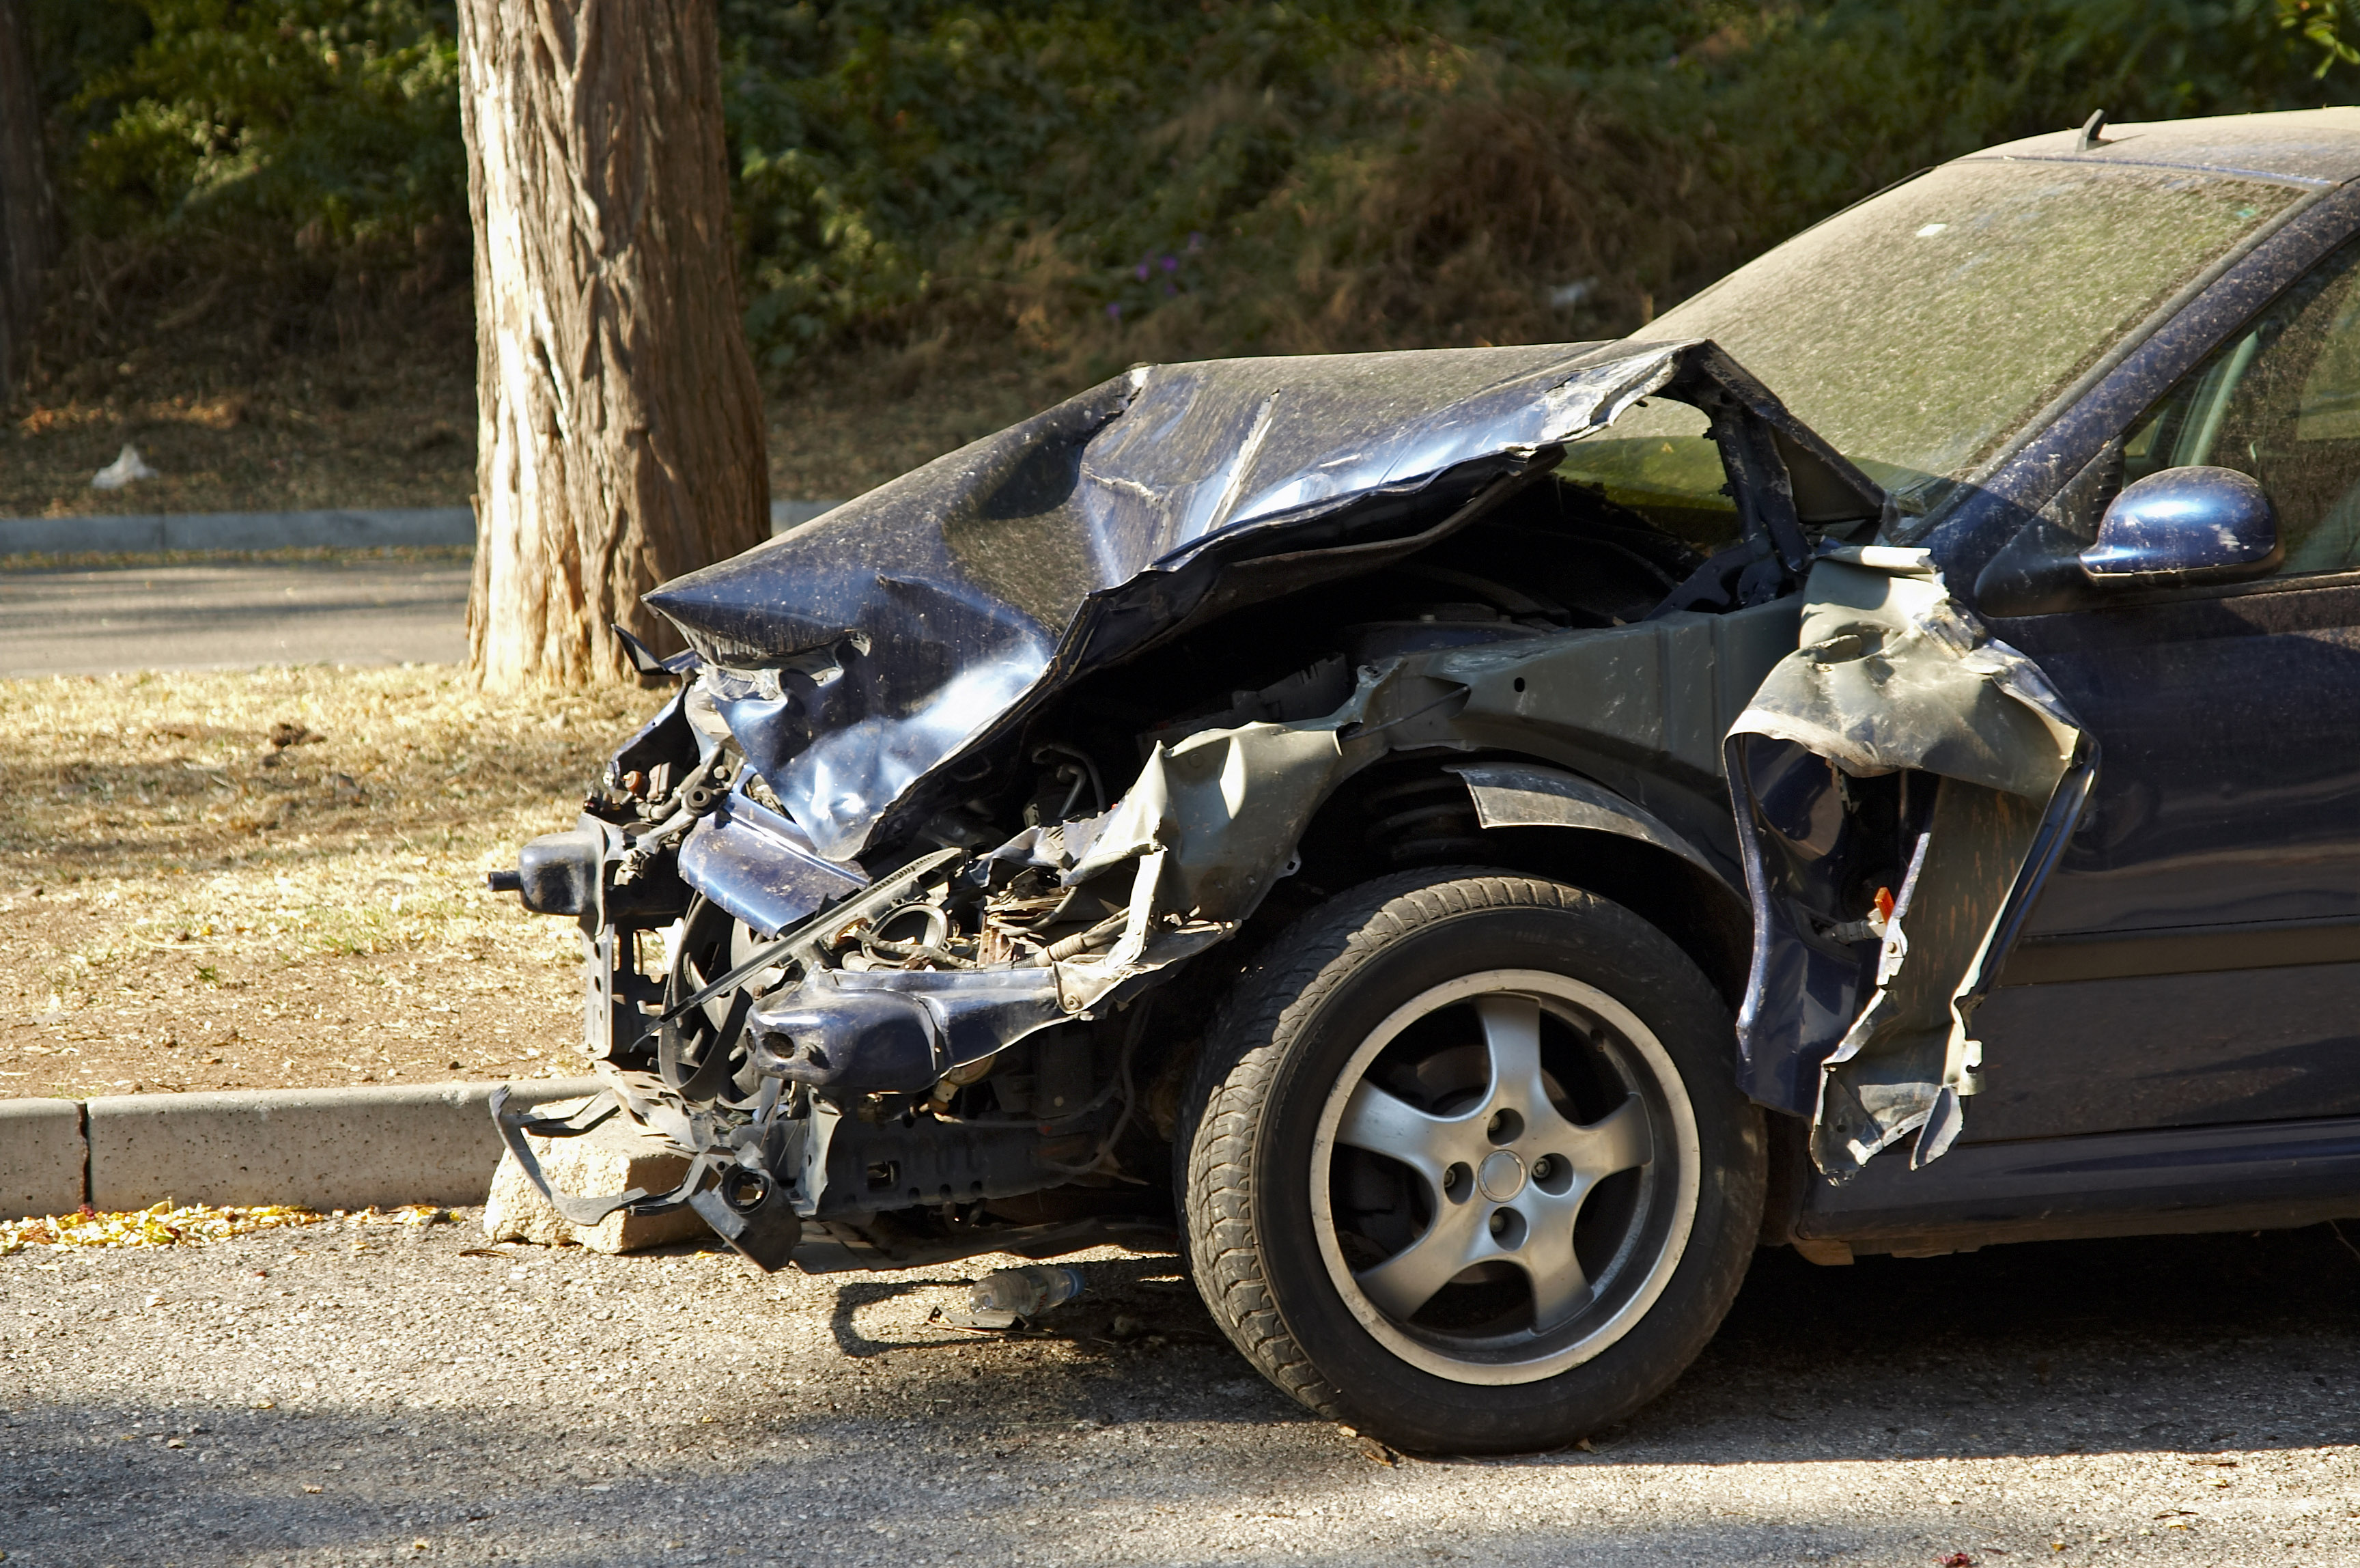 Uncategorized pictures of car accidents bad car -  Photo Via Sxc Hu By Wax115